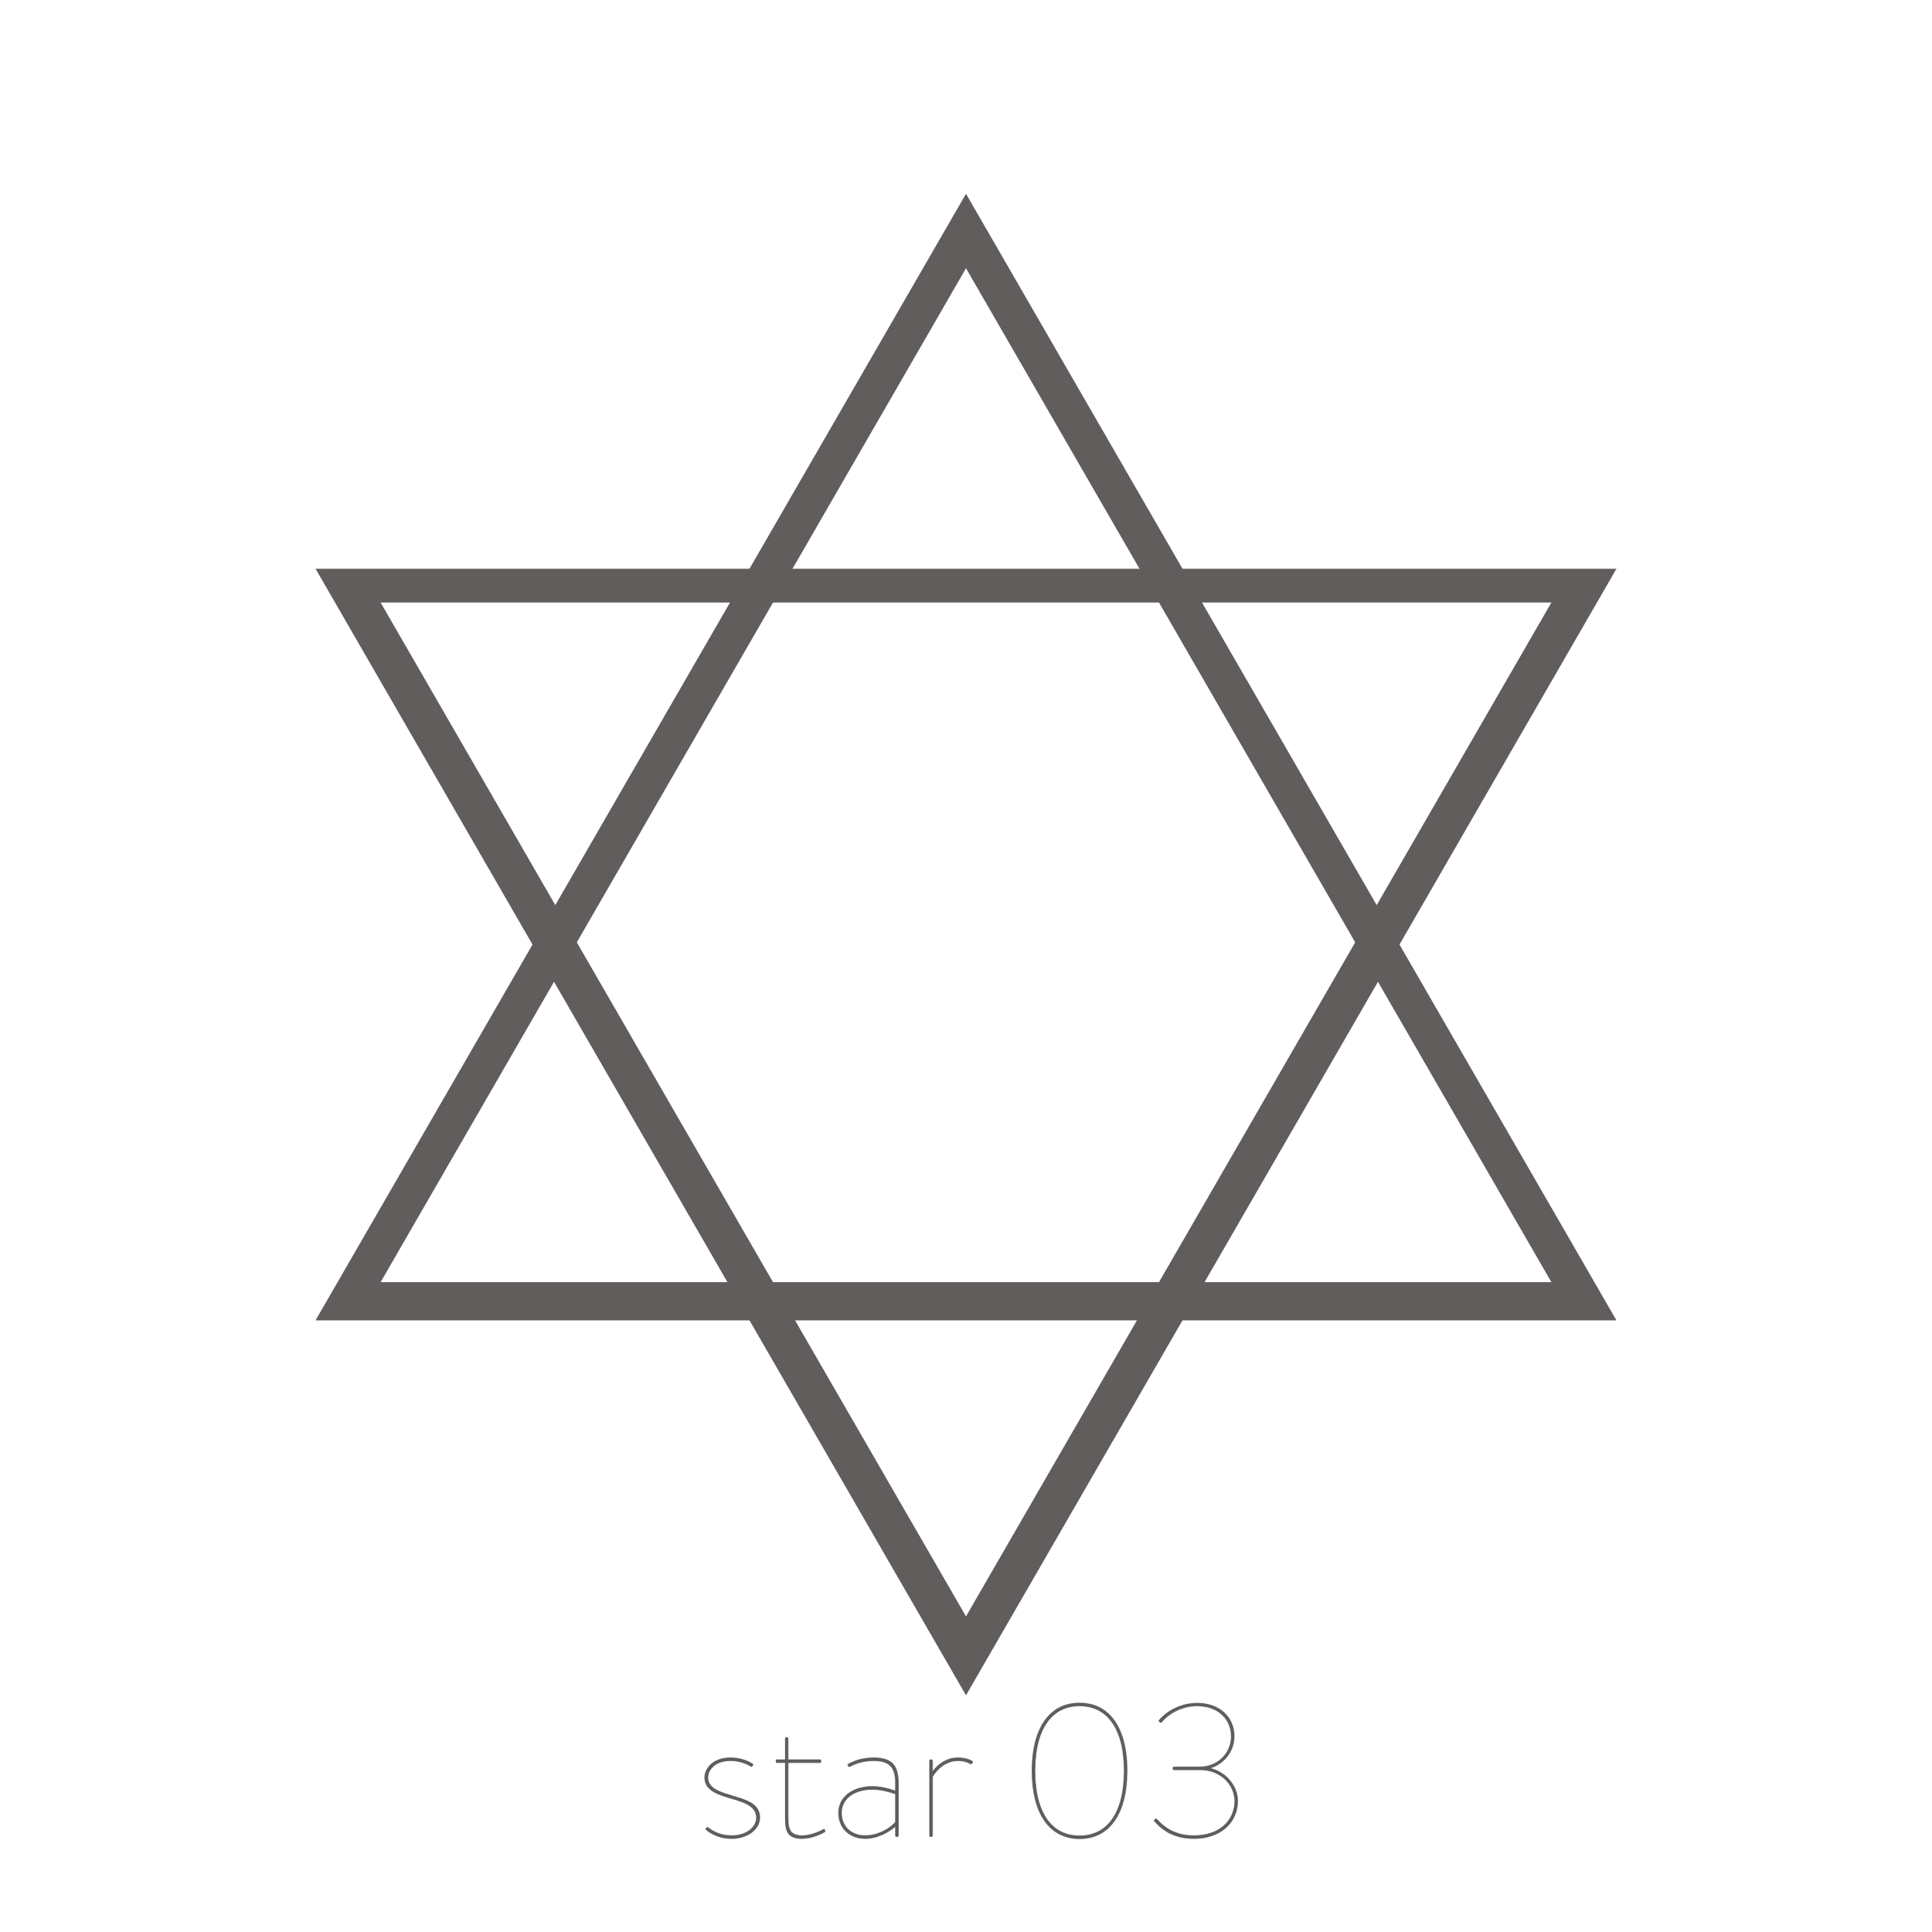 star 03.png